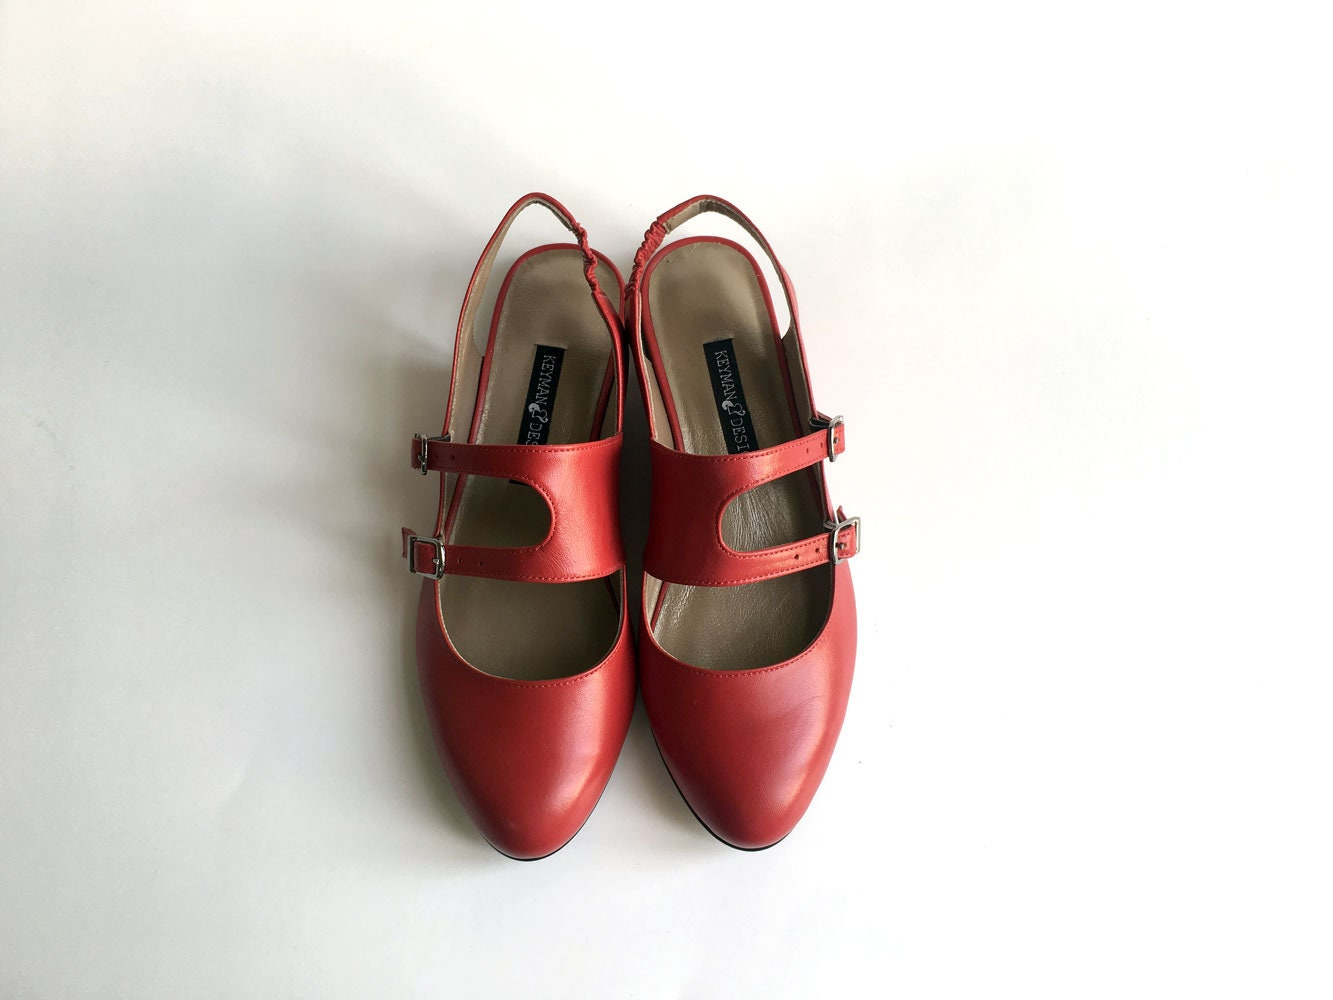 Nell - Red - Shoes FREE SHIPPING Handmade Leather Shoes - bec309